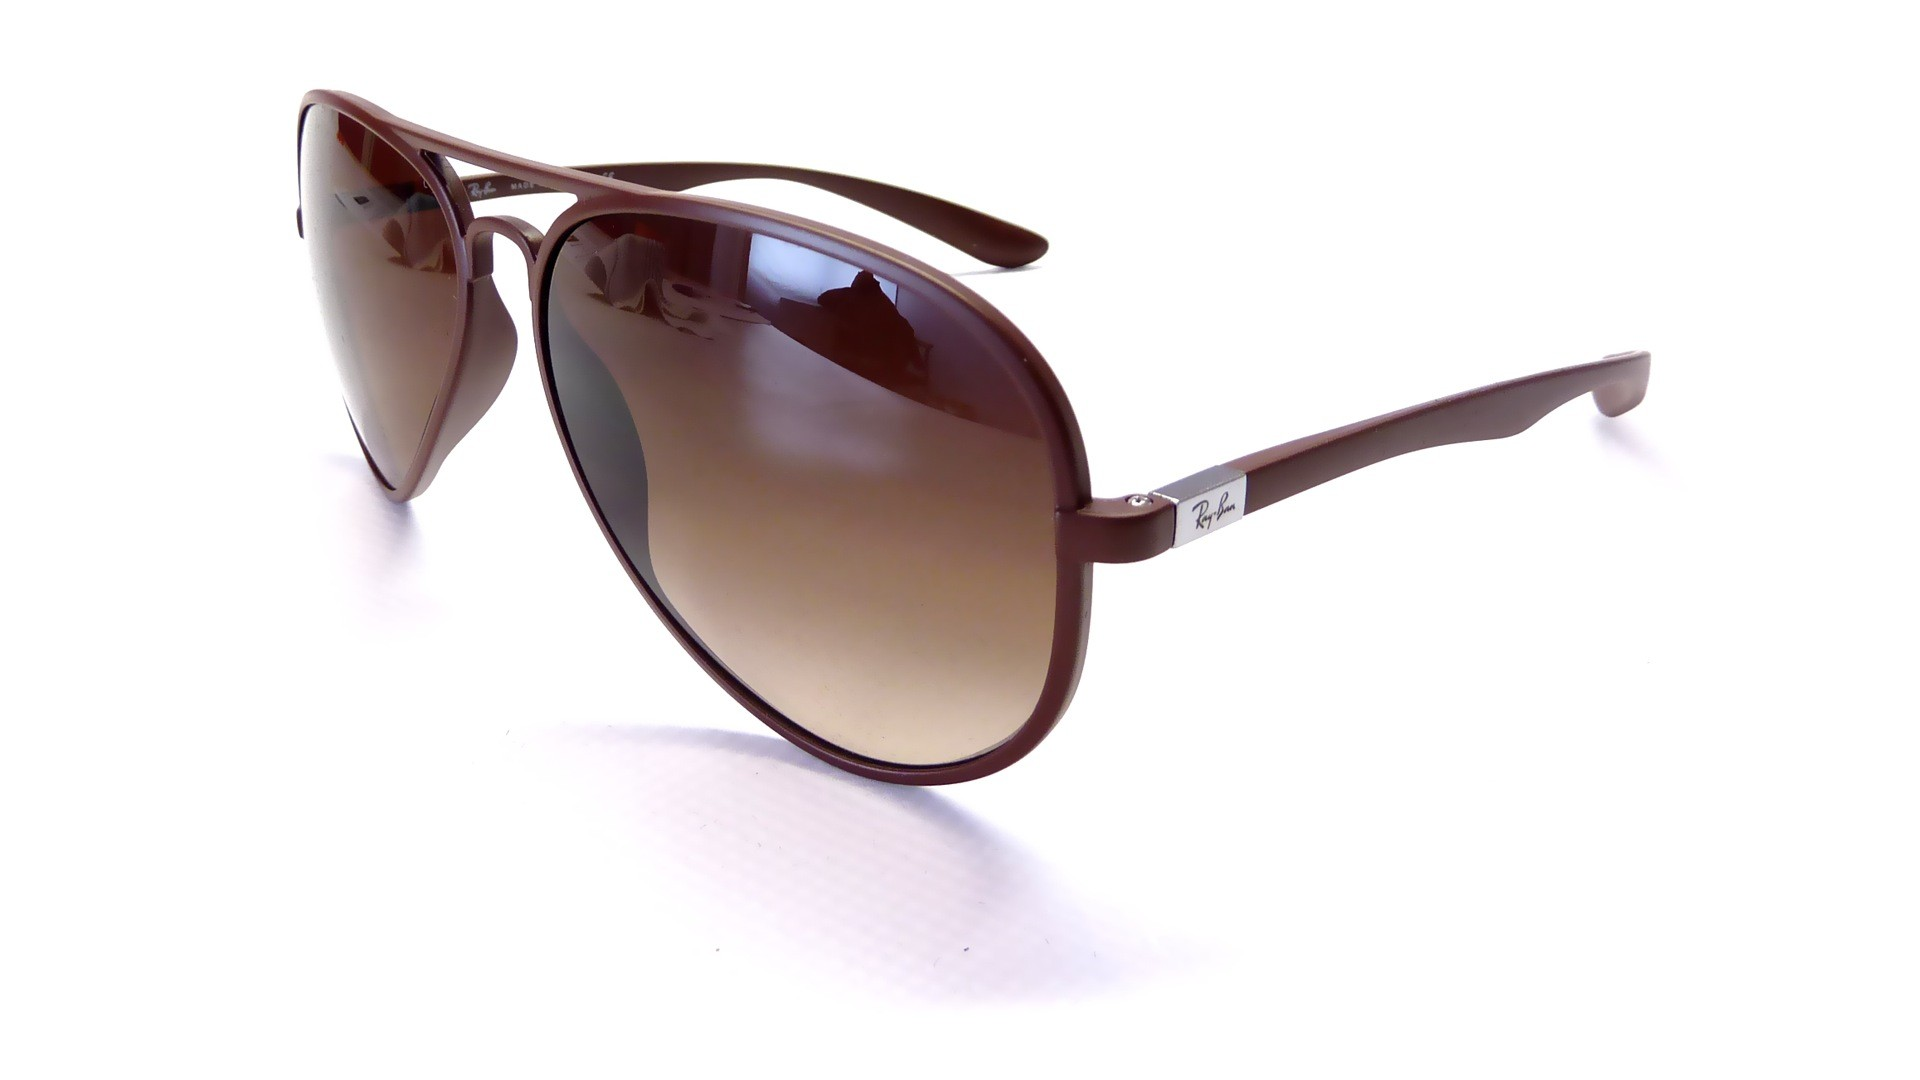 76a93ac0ce7 Rb4180 Vwhr Ray-Ban Aviator Liteforce Liteforce Yellow RB4180 6085 2L 58-13